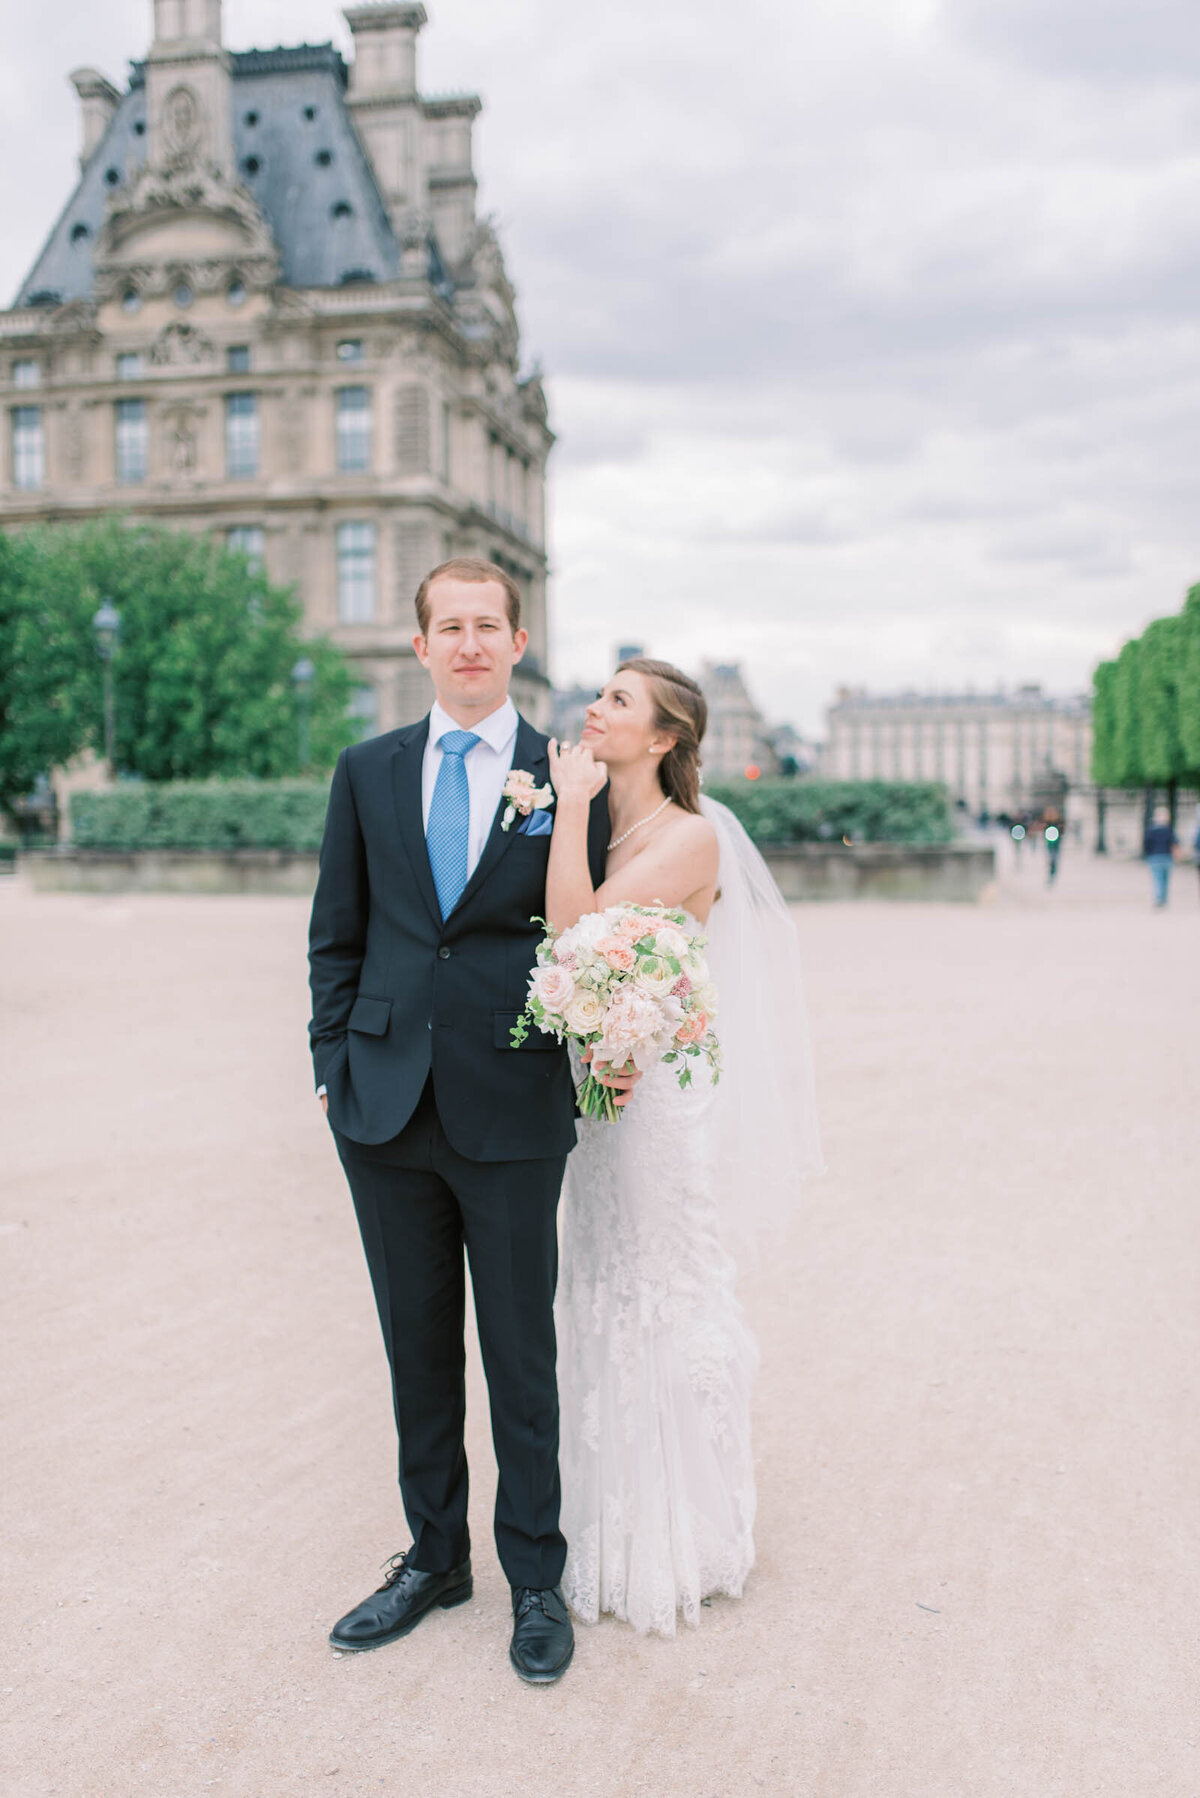 marcelaploskerphotography-paris_wedding-56